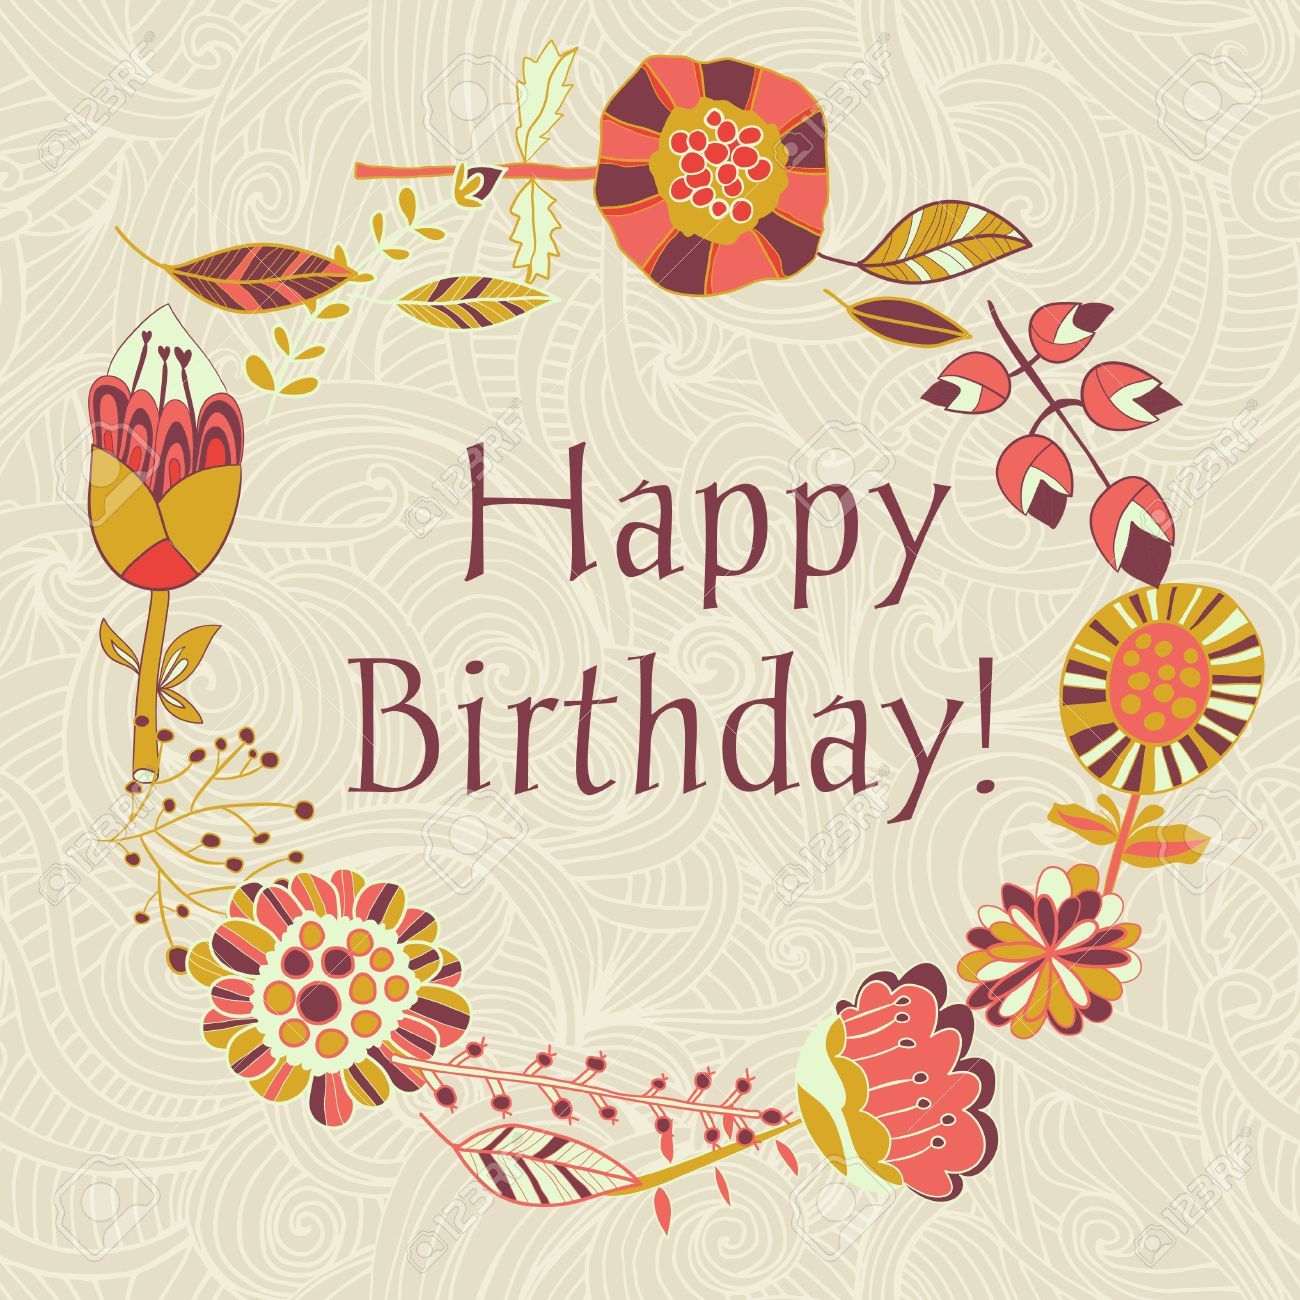 Happy Birthday Greeting Card Circle Floral Frame With Cute Cartoon